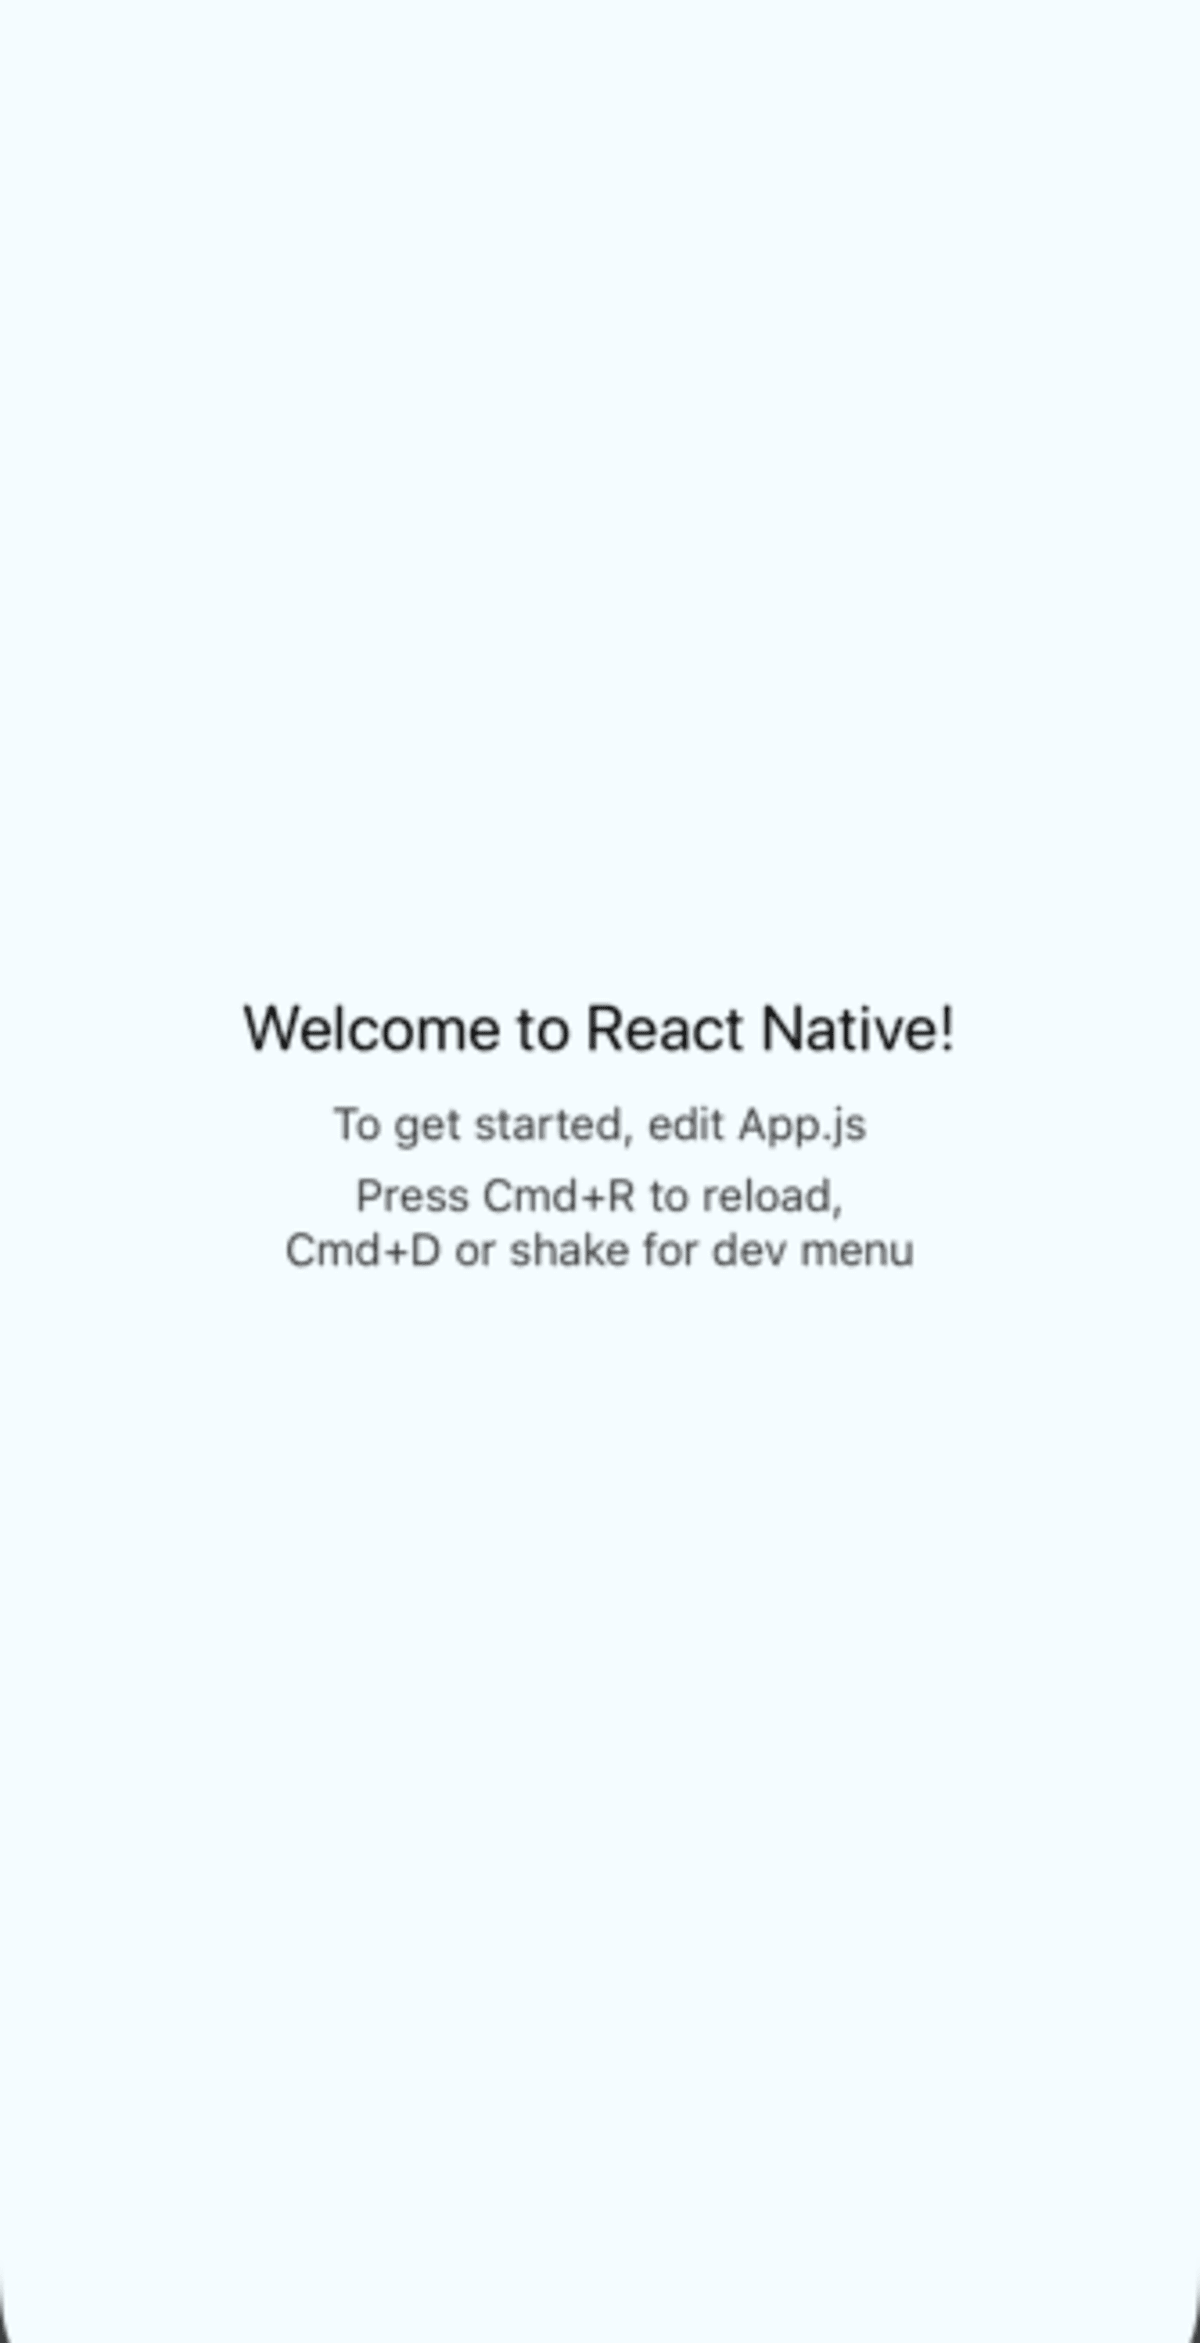 Implementing an Infinite Scroll list in React Native ― Scotch io